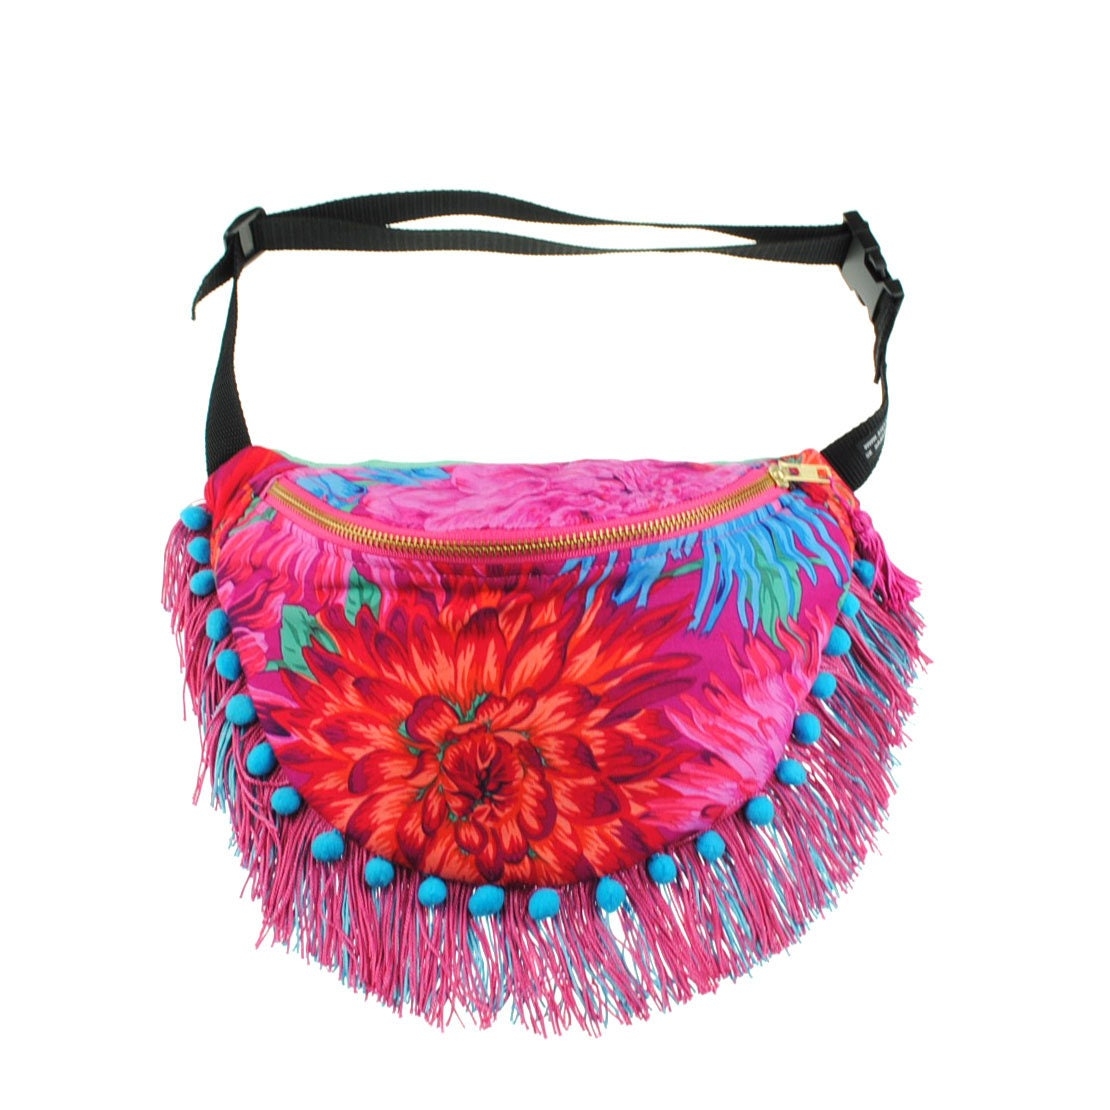 CRYZANTH in pink pompom tassel cotton bumbag or fanny pack. Limited edition. metal ykk zipper pink.